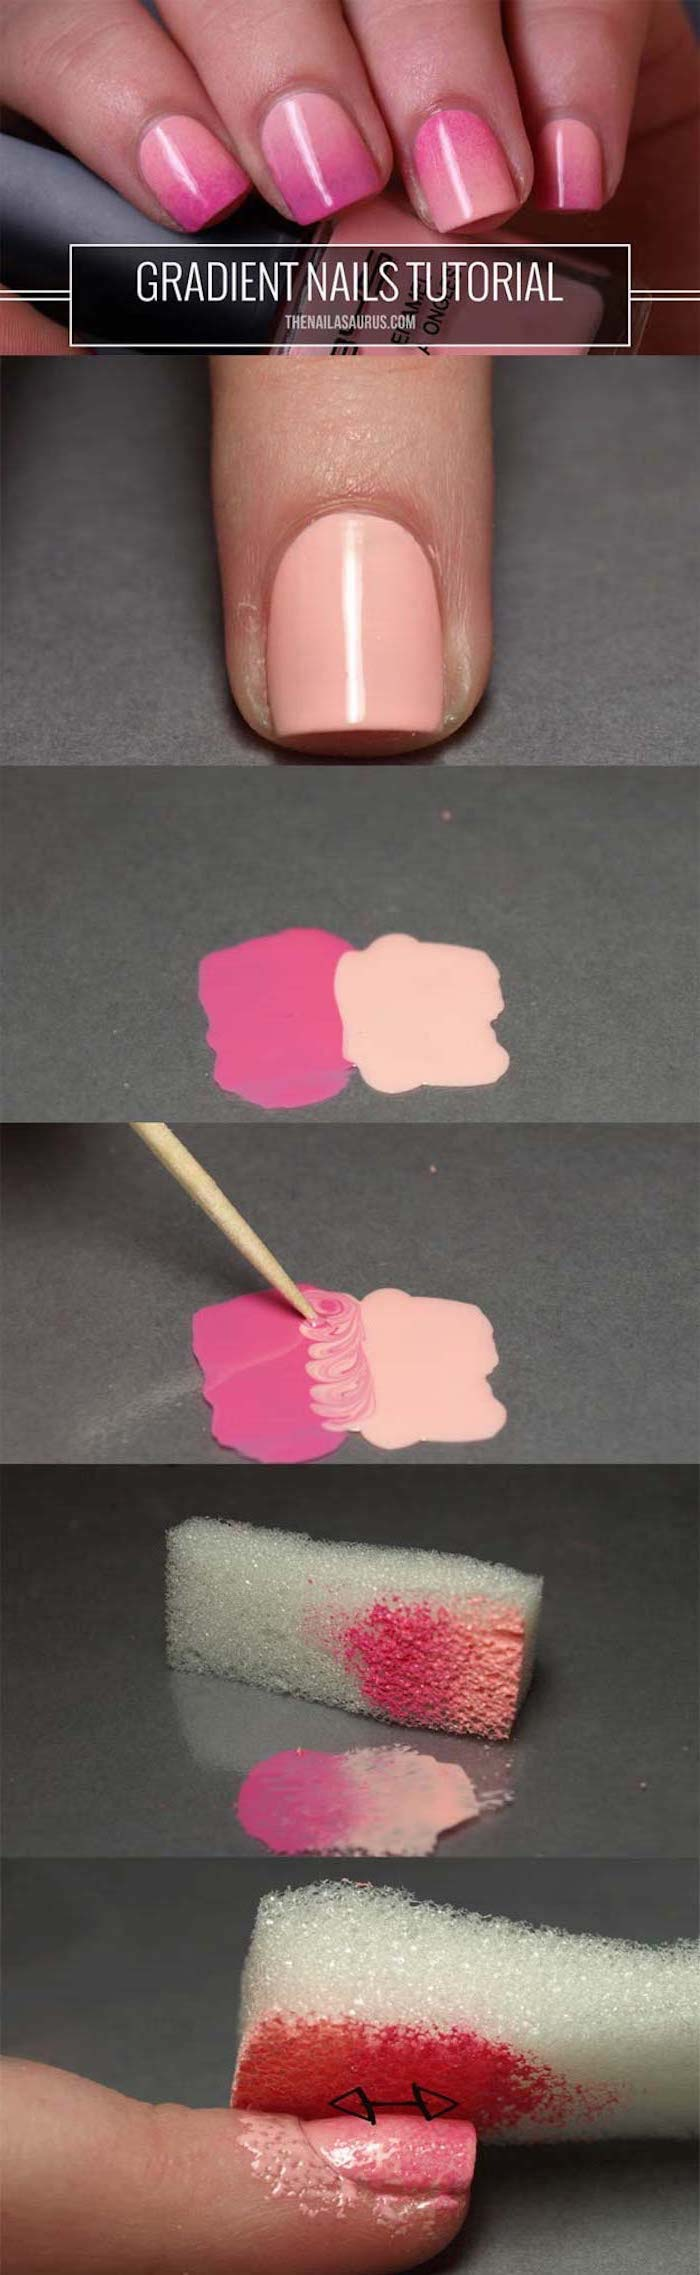 step by step diy tutorial, how to do ombre, light to dark pink gradient nail polish, pink ombre nails, short square nails